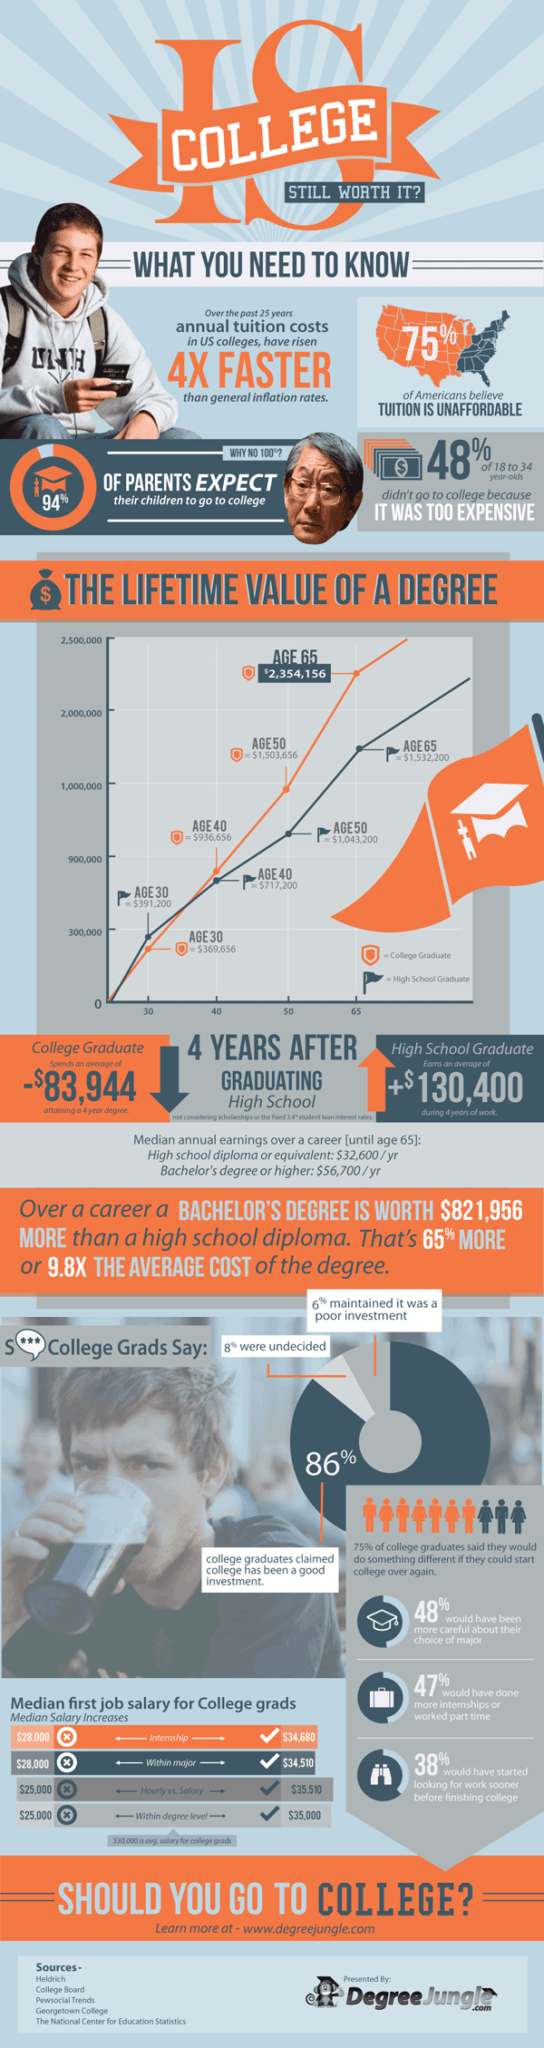 college worth it 600 Is College Worth It? [infographic]